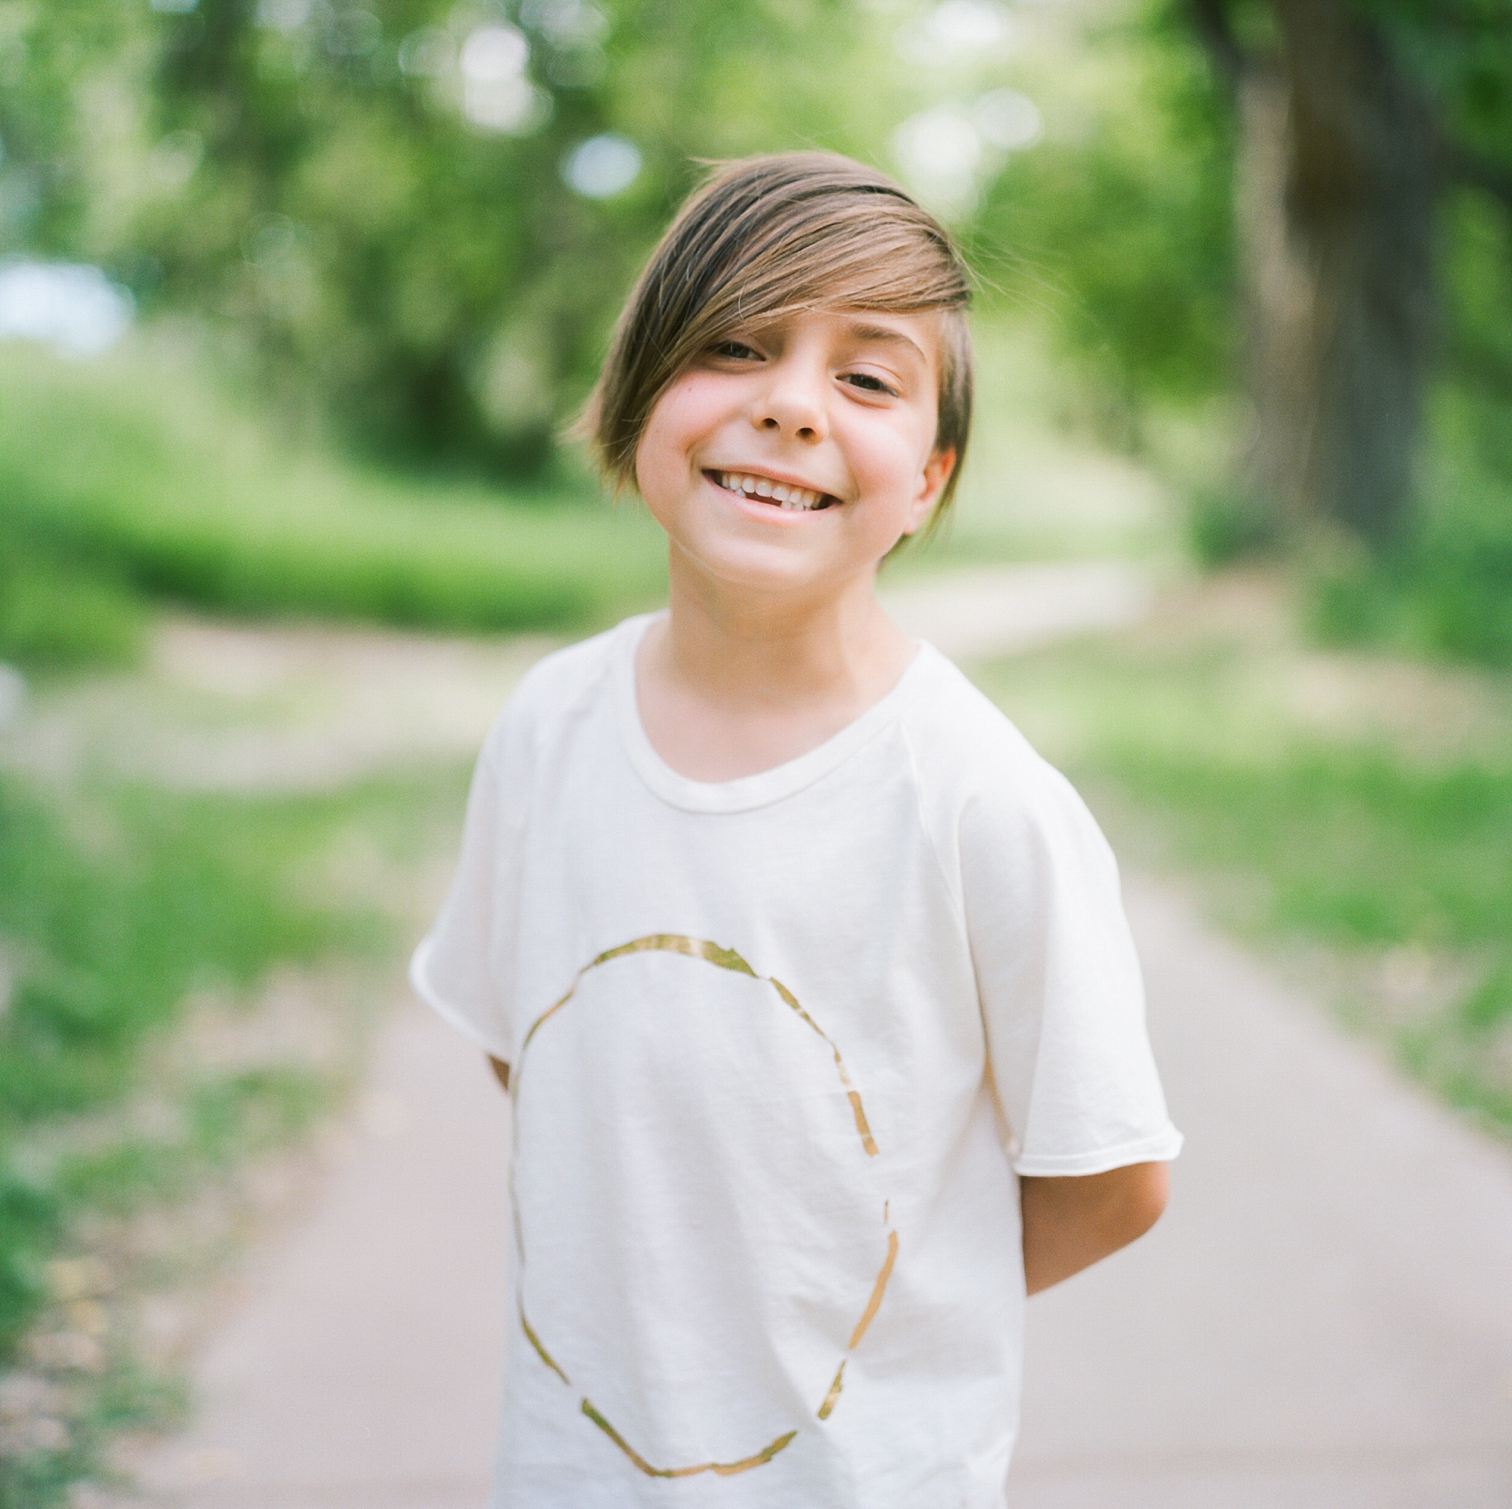 Film Photographers, Colorado Family Portraits, Fort Collins Portrait Photographer, Summer Family Portraits, Boy Smiling At Park